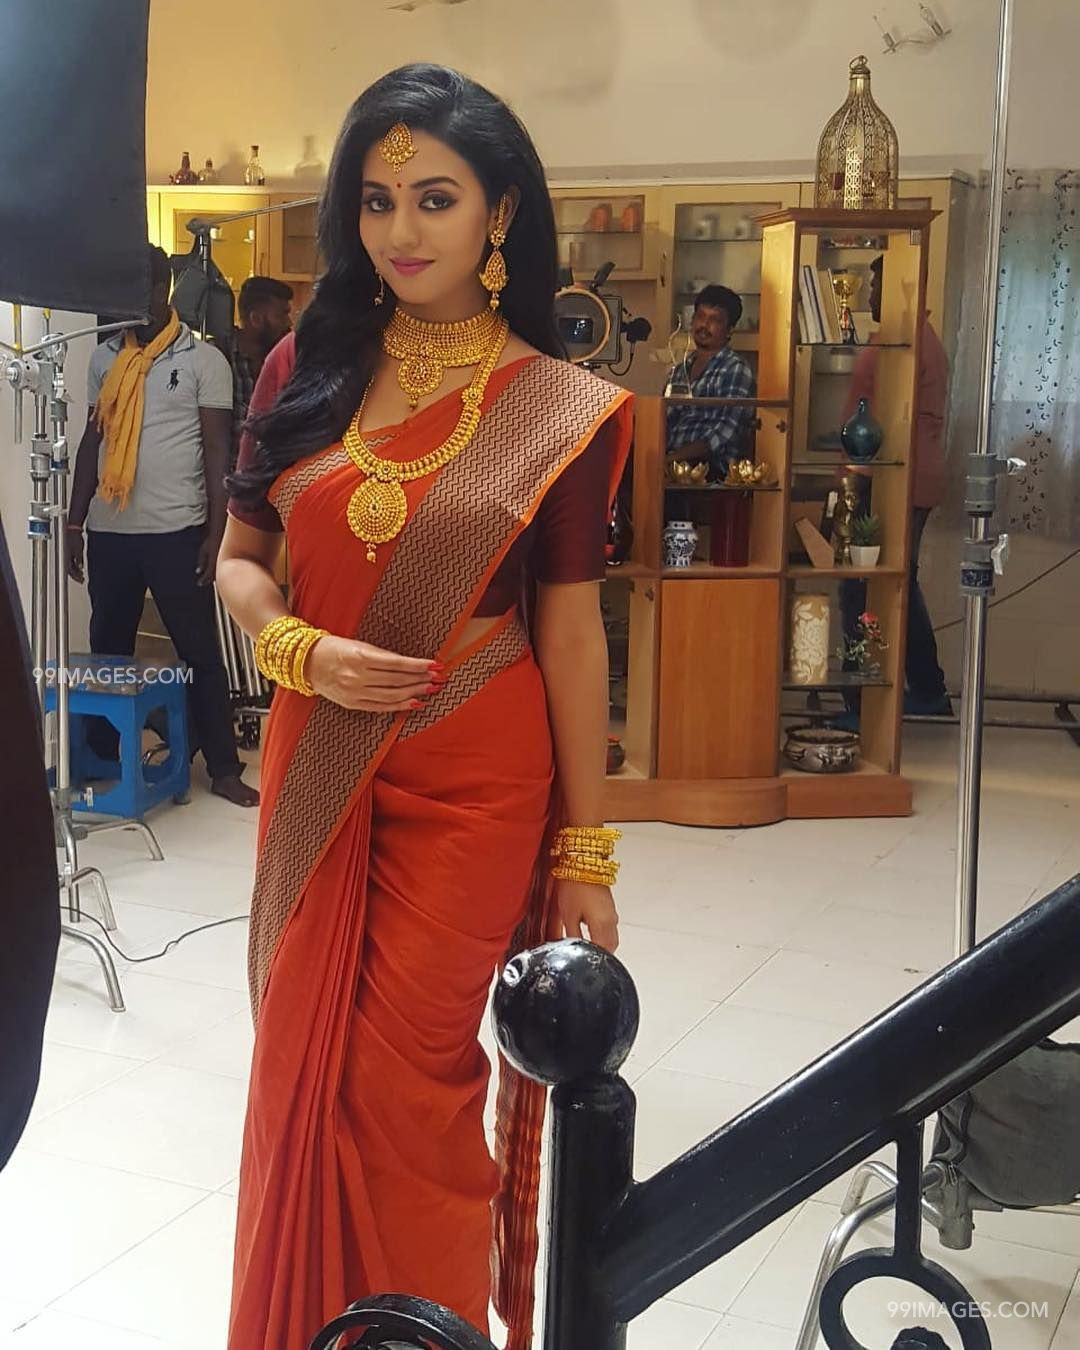 Vidhya Beautiful HD Photos & Mobile Wallpapers HD (Android/iPhone) (1080p) (18876) - Vidhya